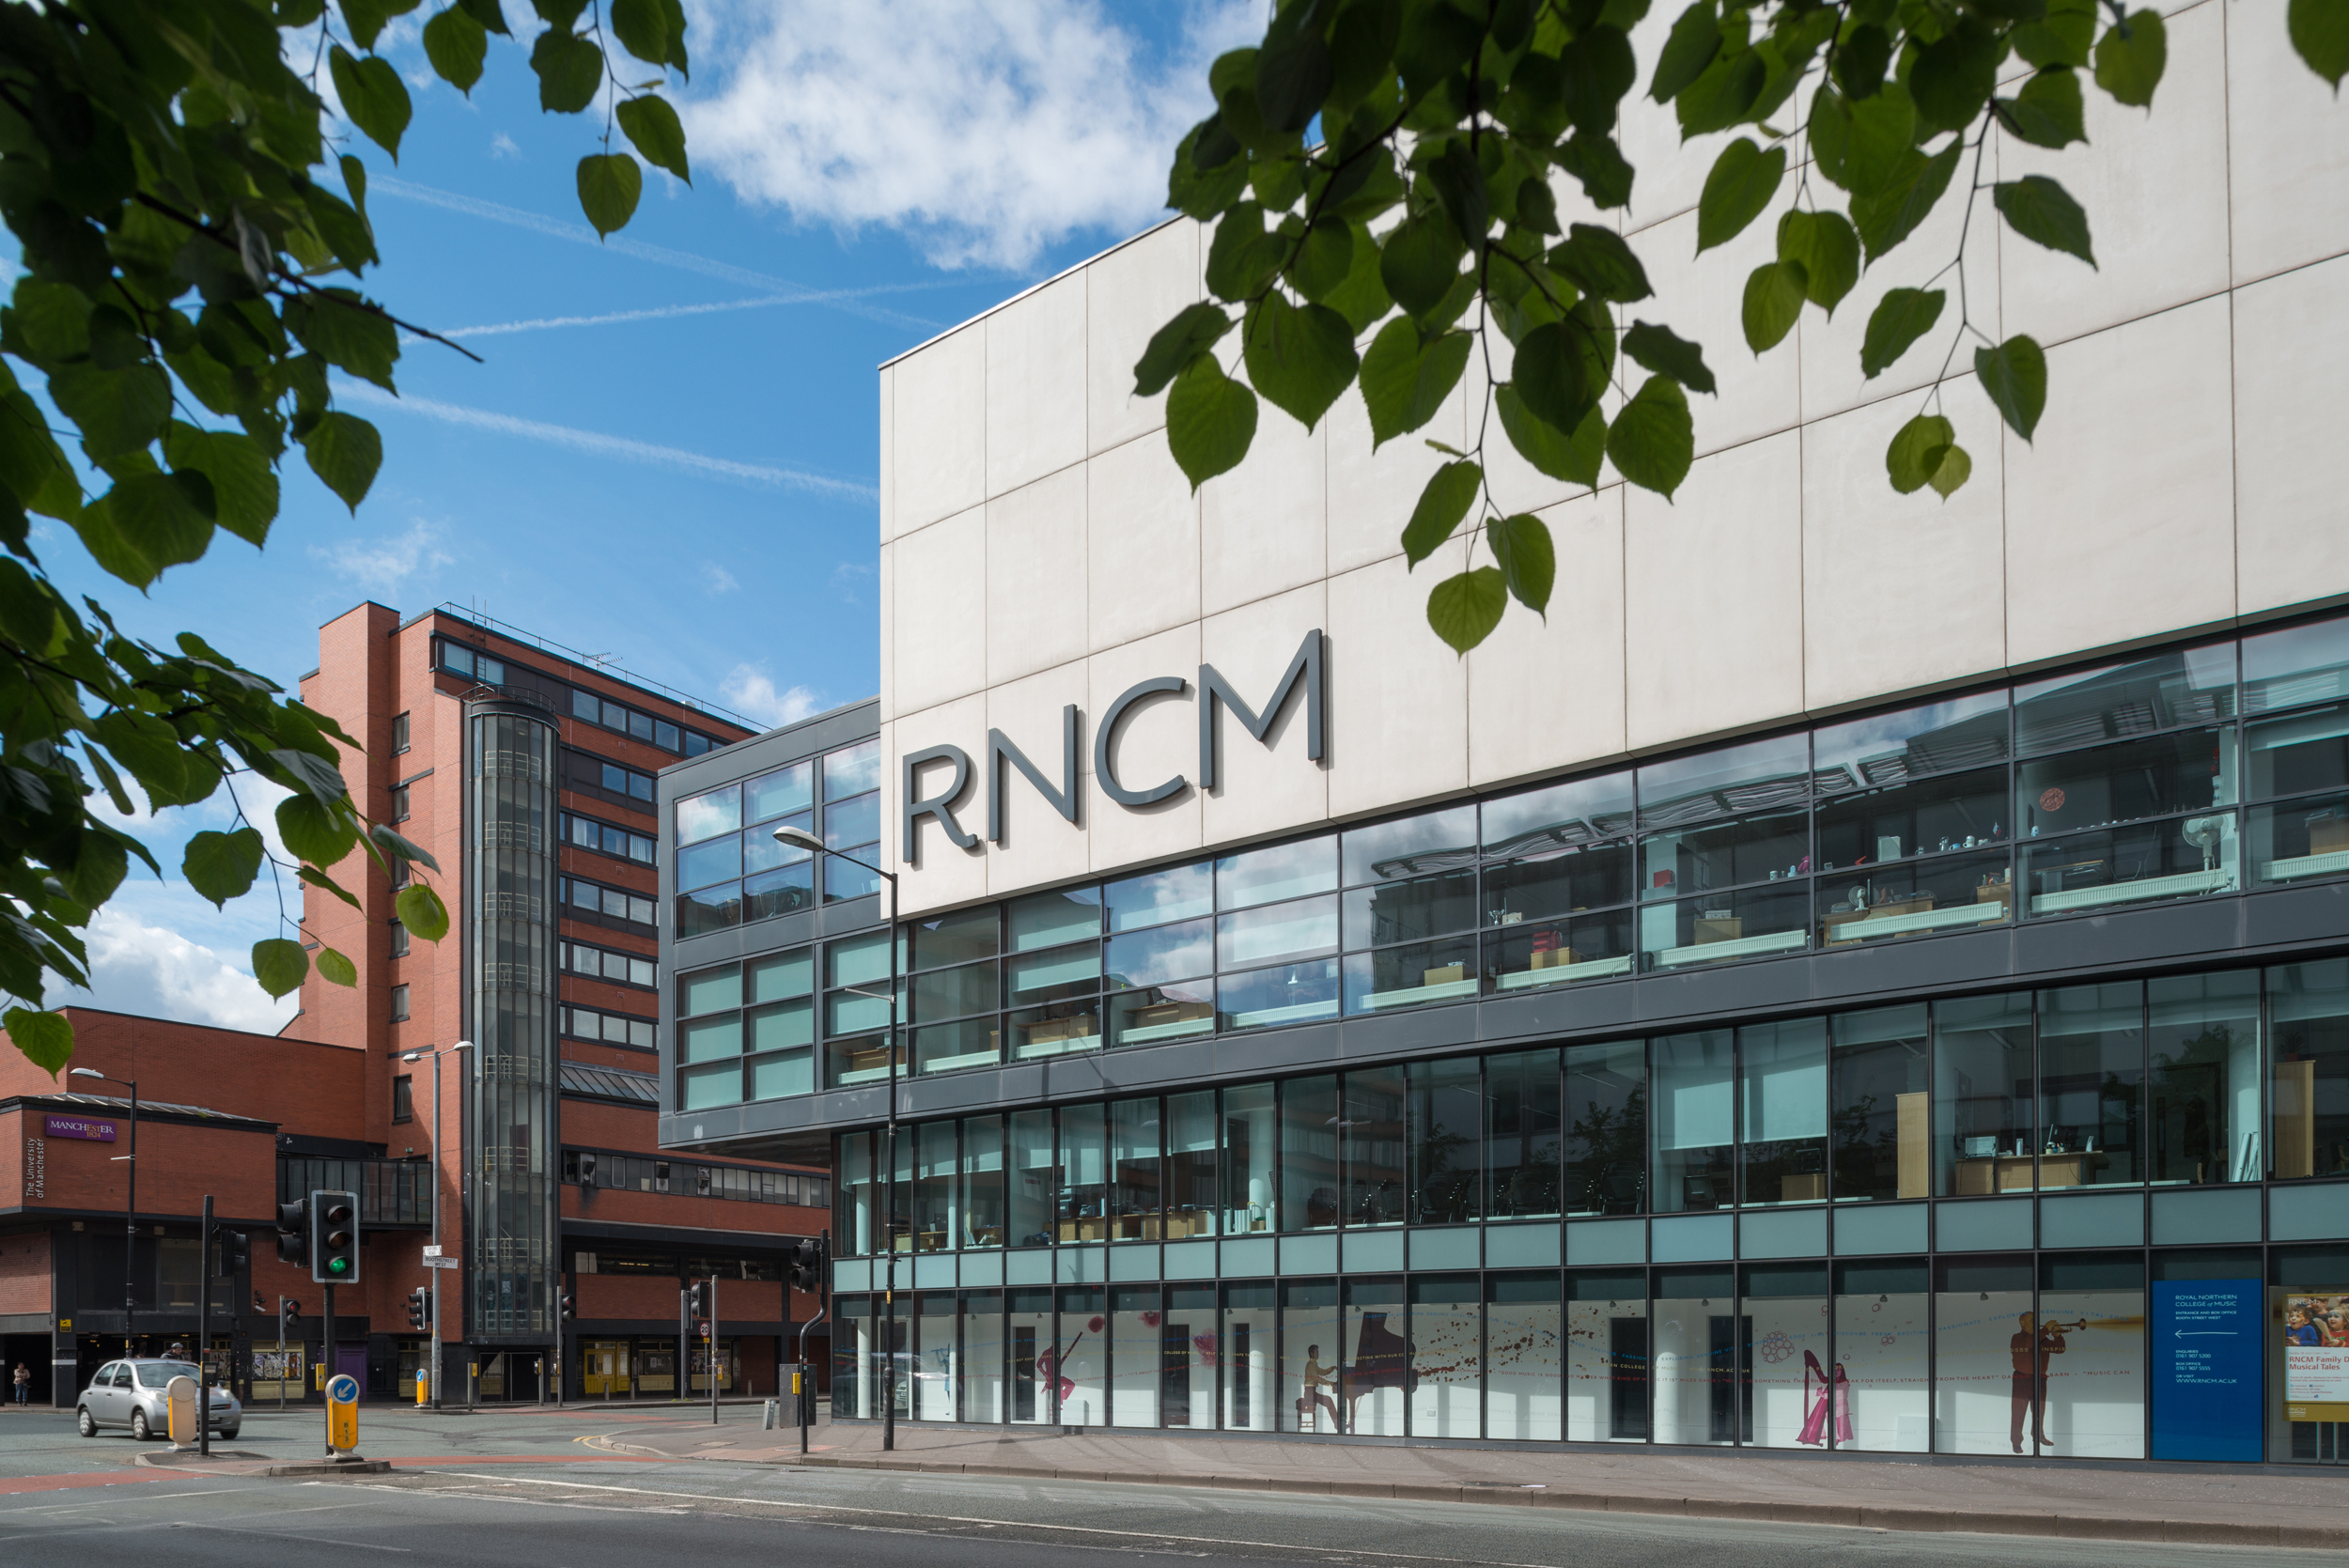 Royal College of Music - Manchester